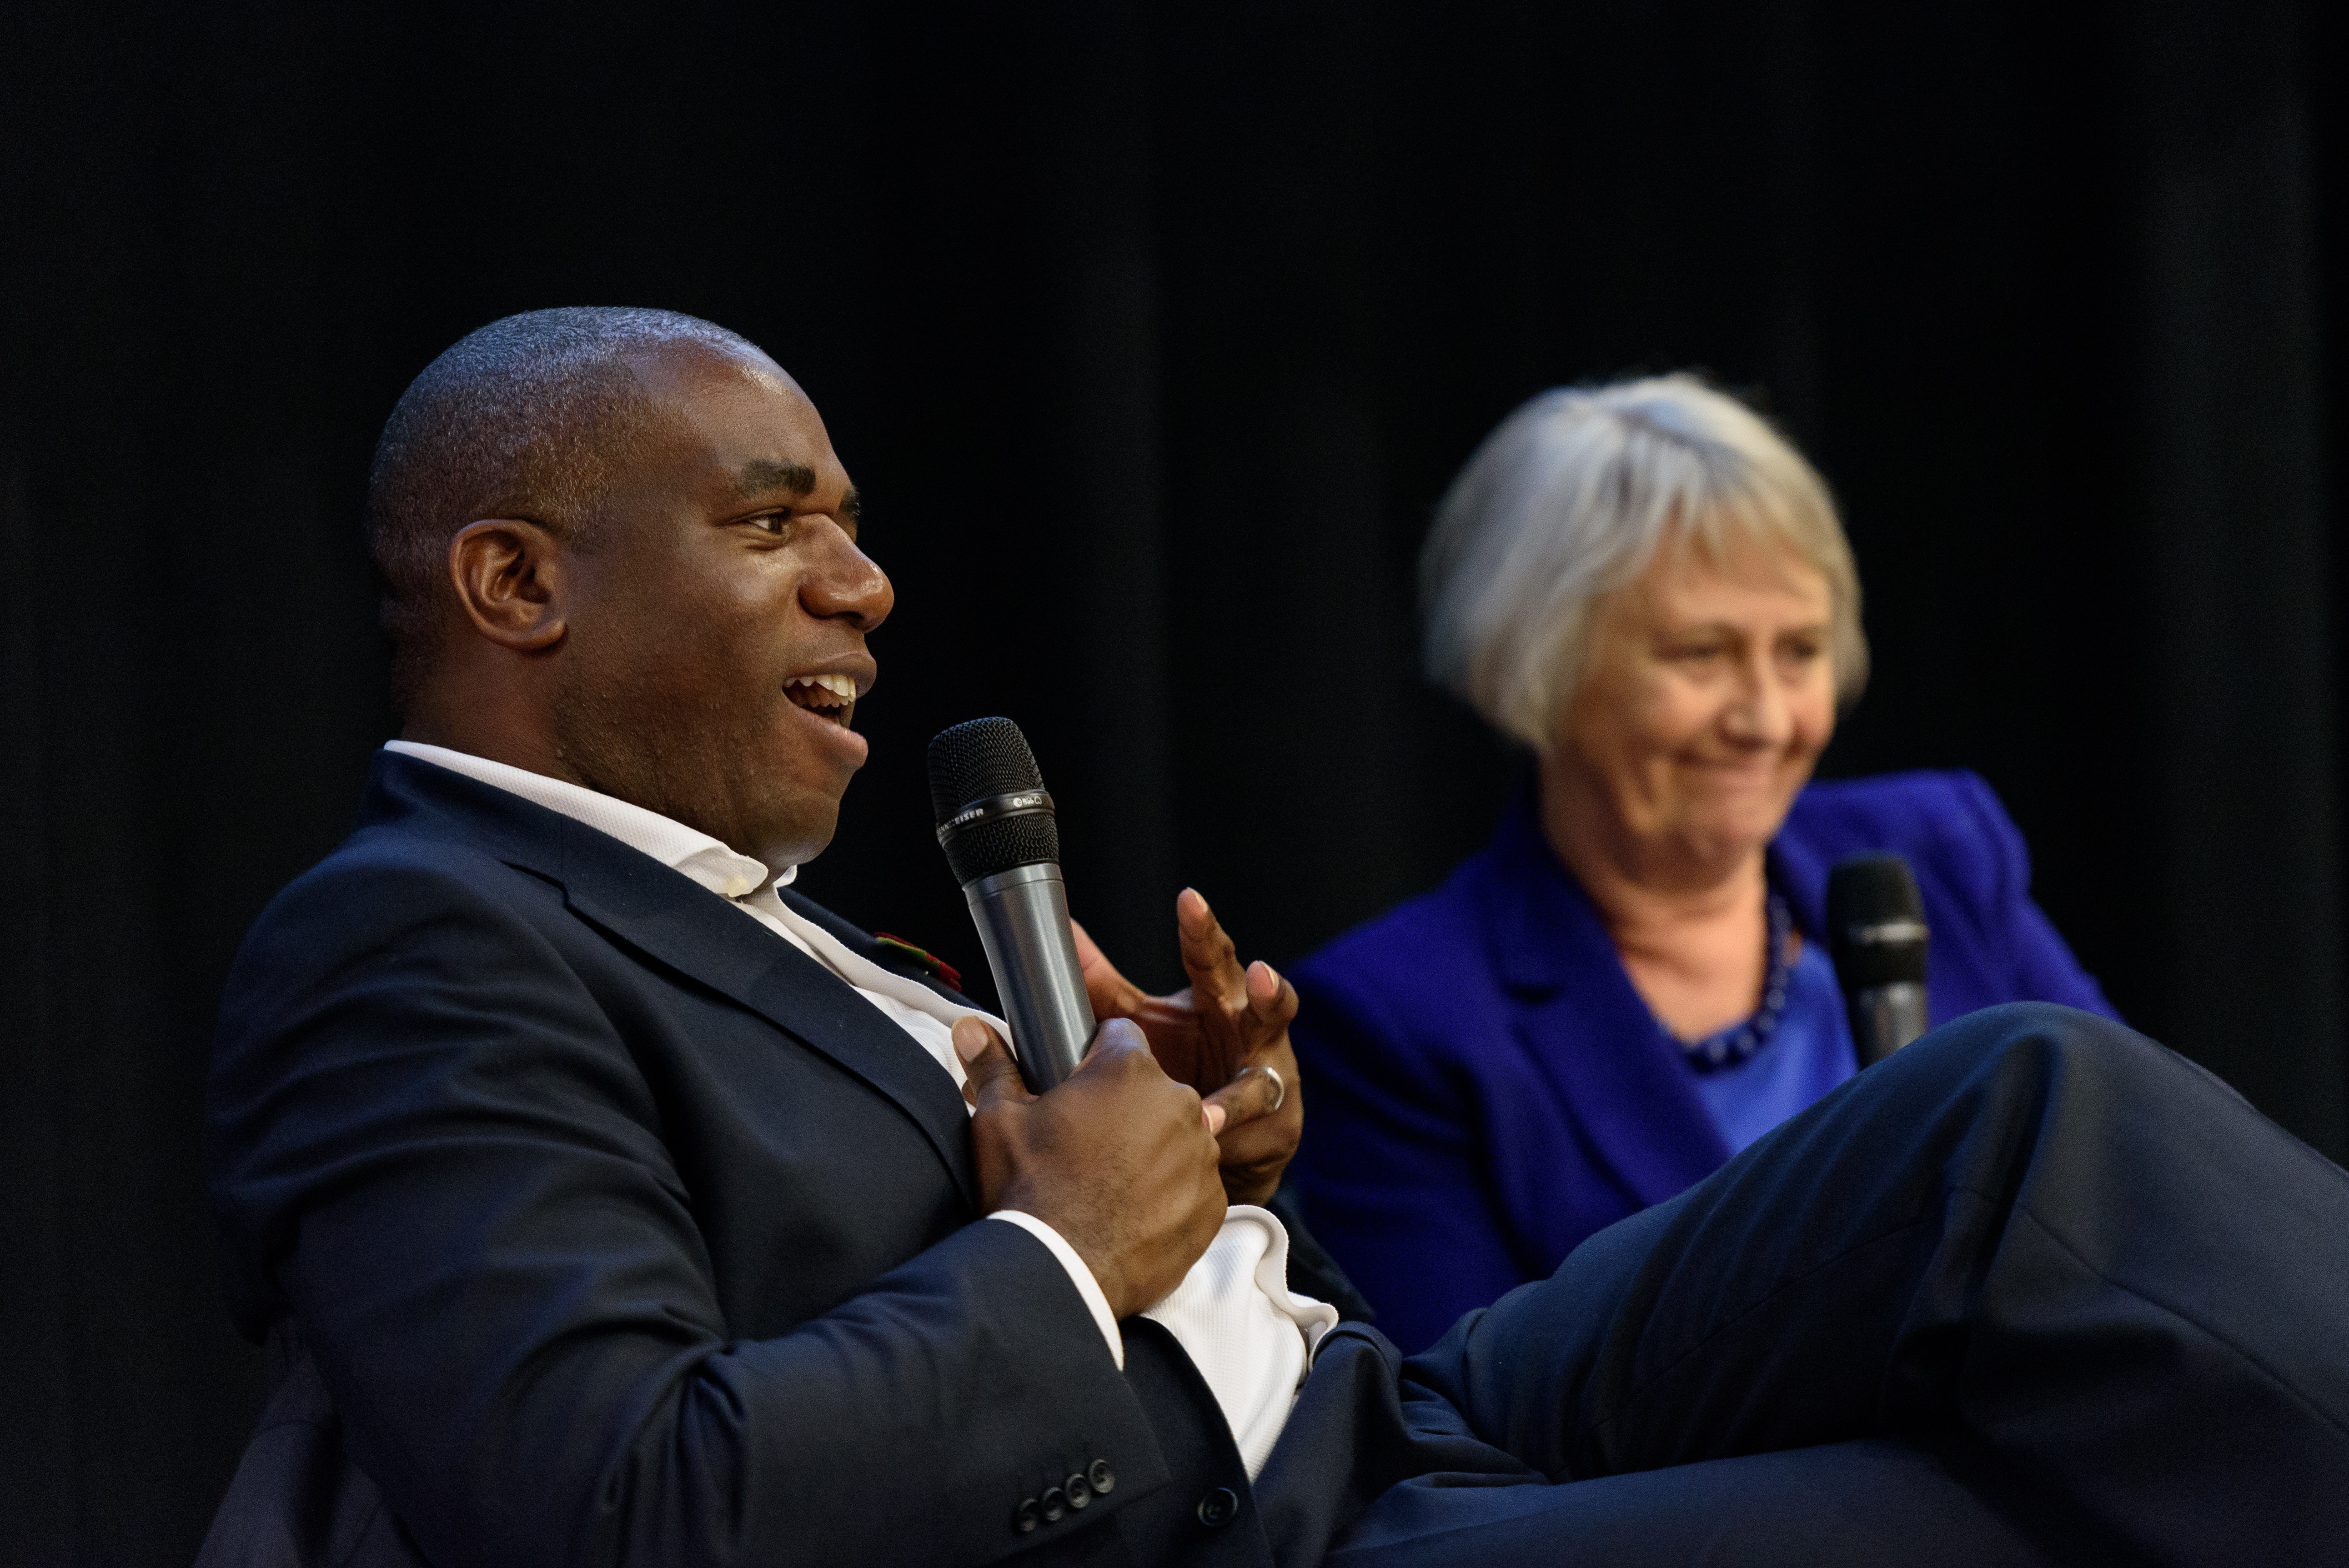 David Lammy Clinks AGM